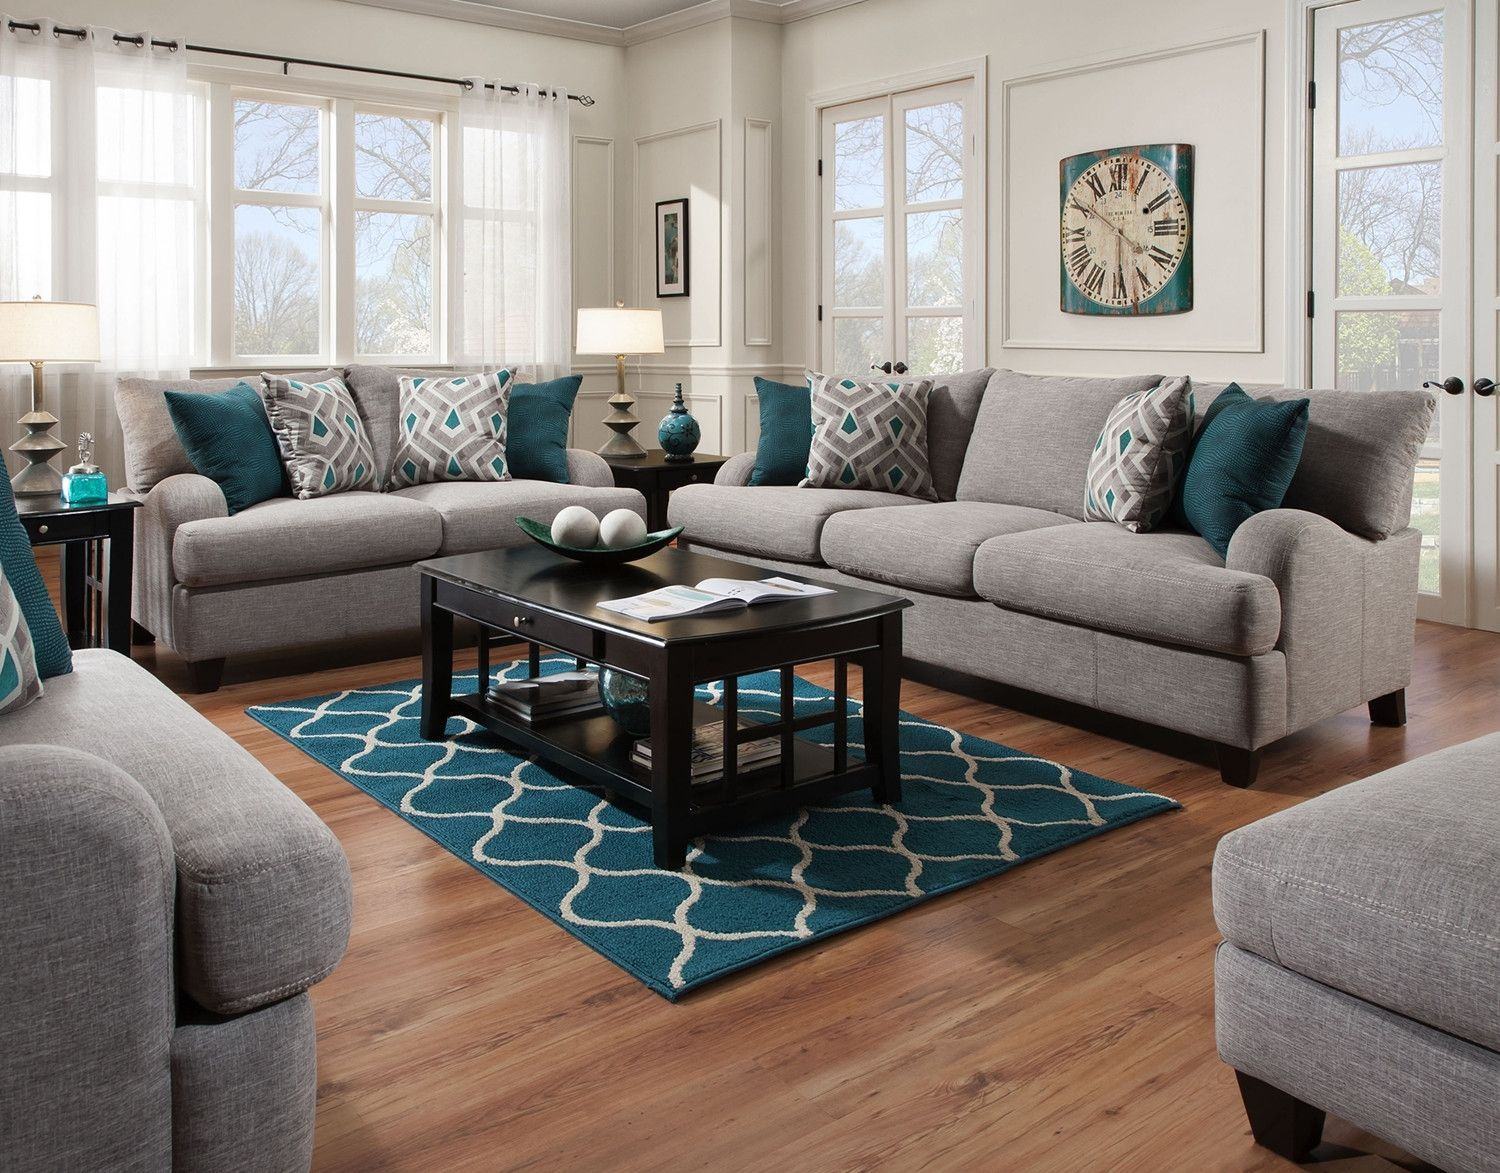 892 the paradigm living room set grey living room - Grey and blue living room furniture ...